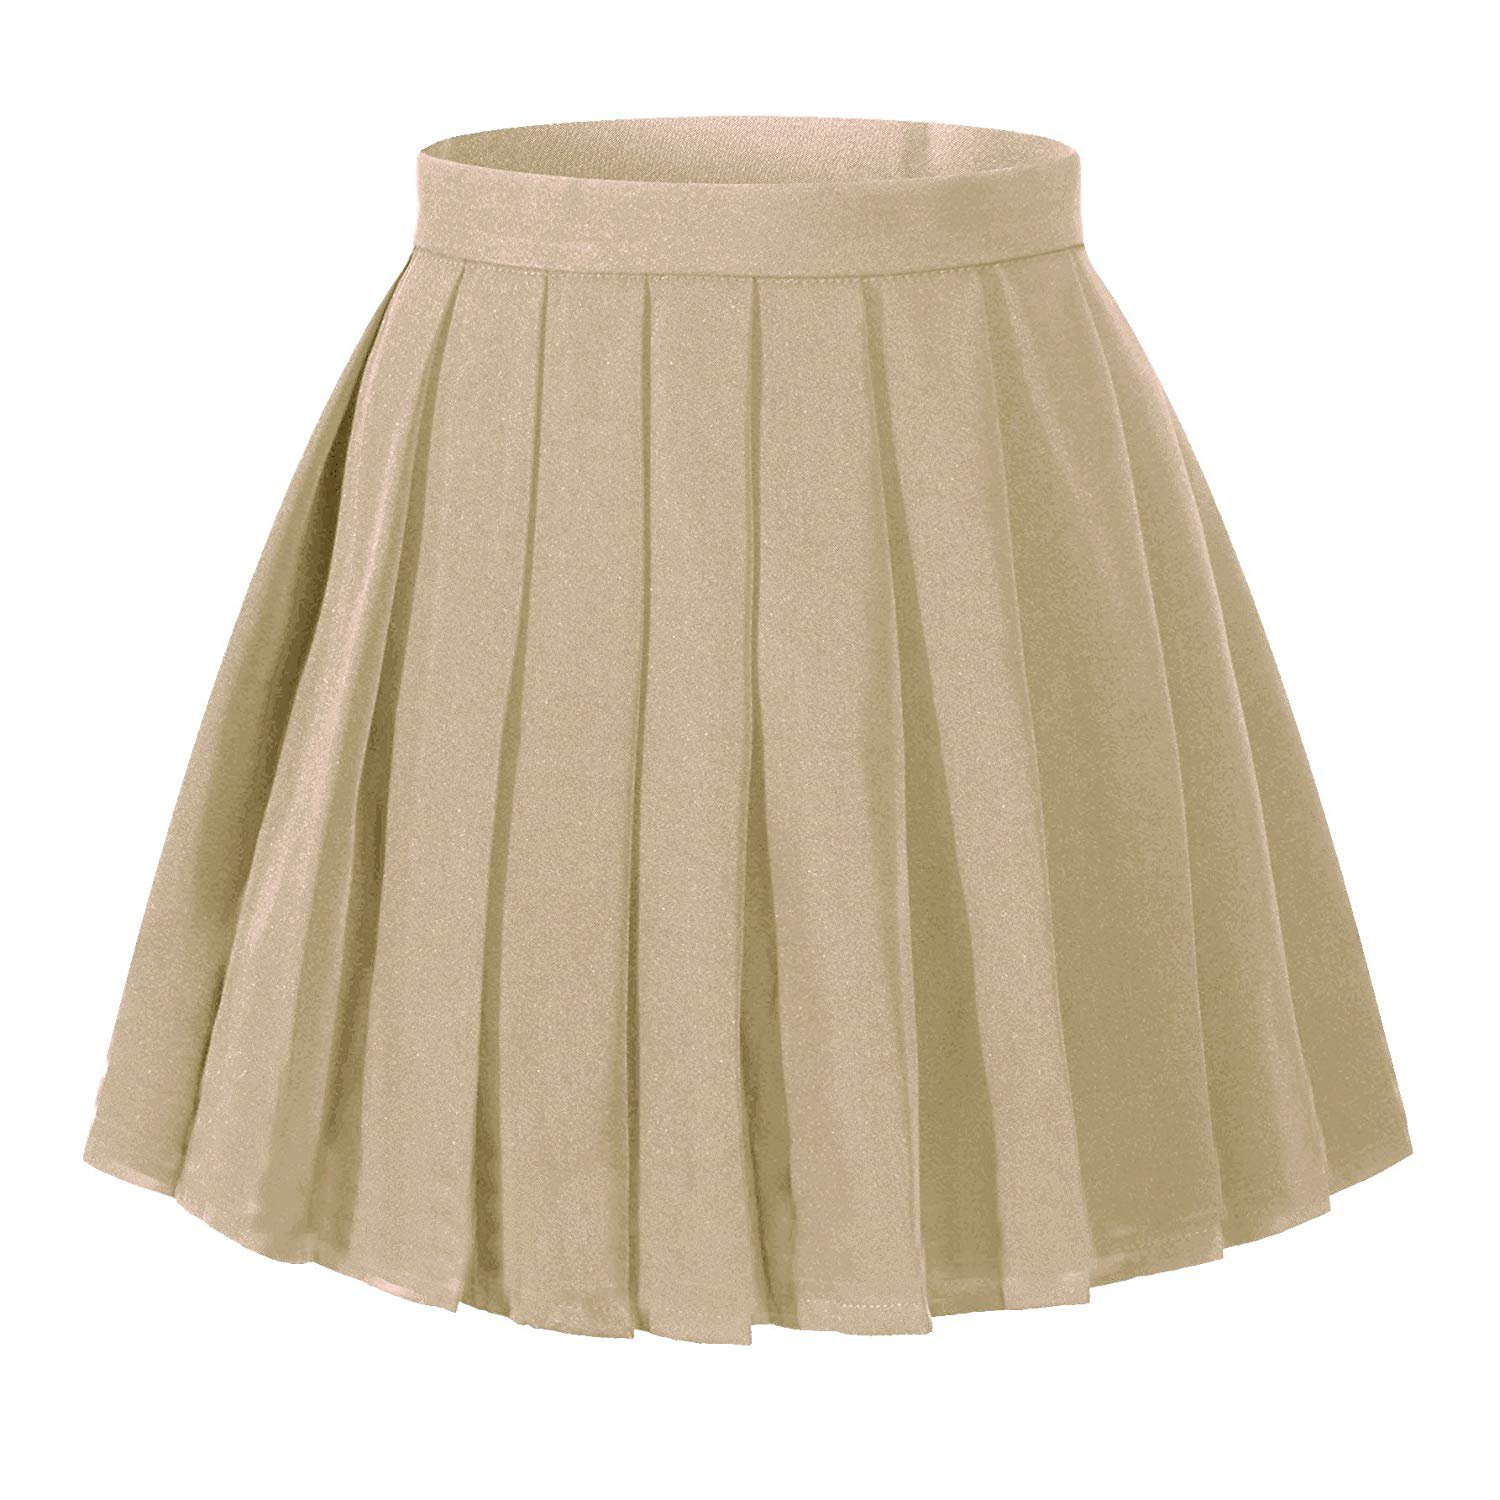 High Waisted Pleated Skirt - Khaki